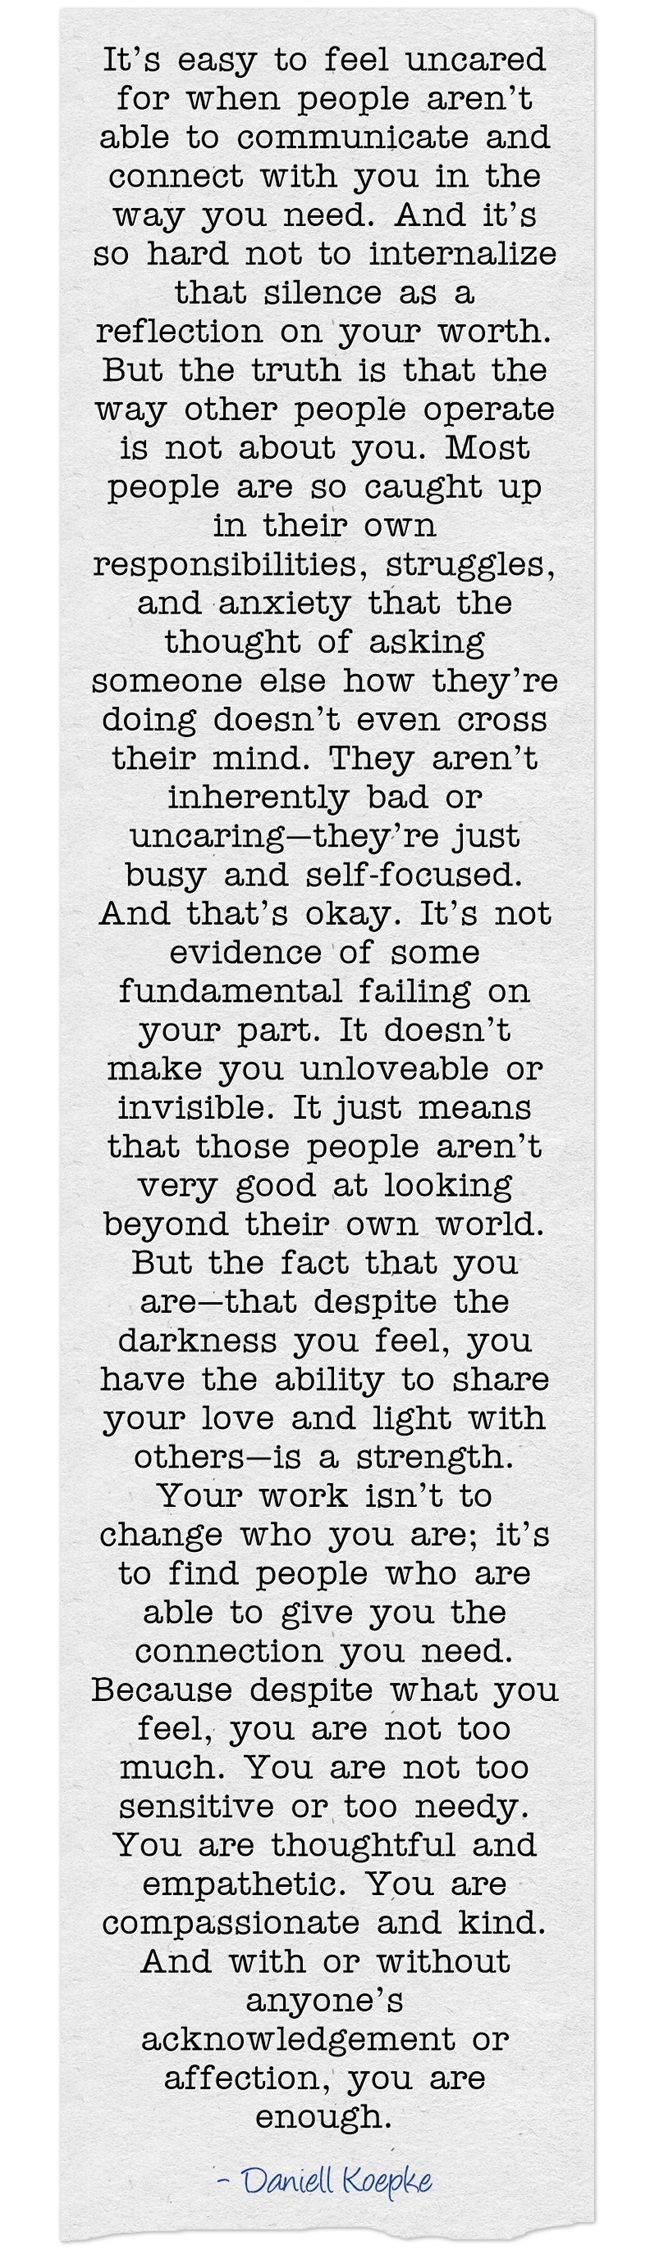 This explains everything that's been going on in my head recently. It's nice to know I'm obviously not the only person who felt/feels this way..